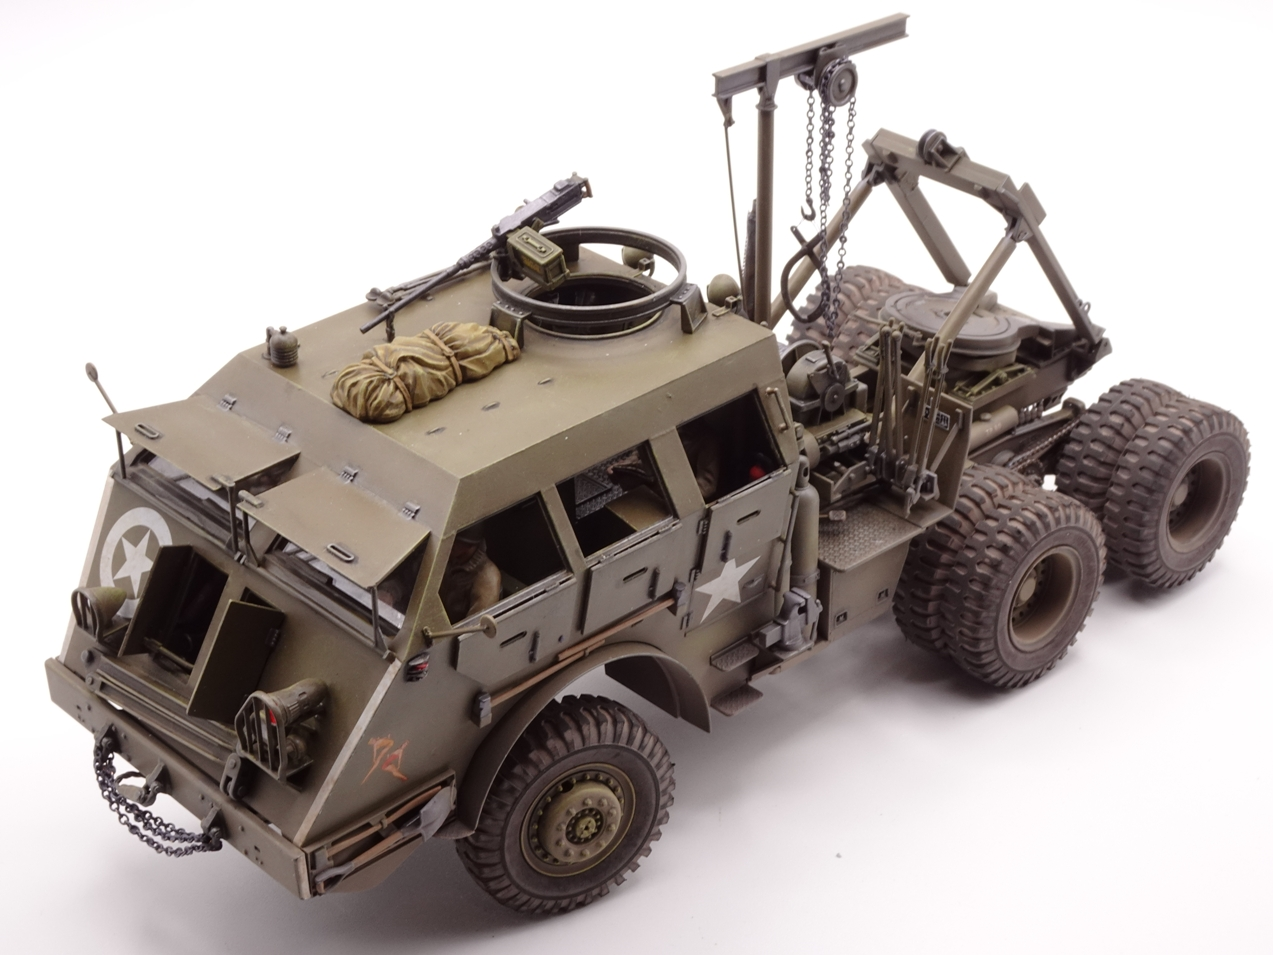 [Tamiya 1/35] M26 Armored tank recovery vehicle réf. 35244 - Page 4 M26-fin-2